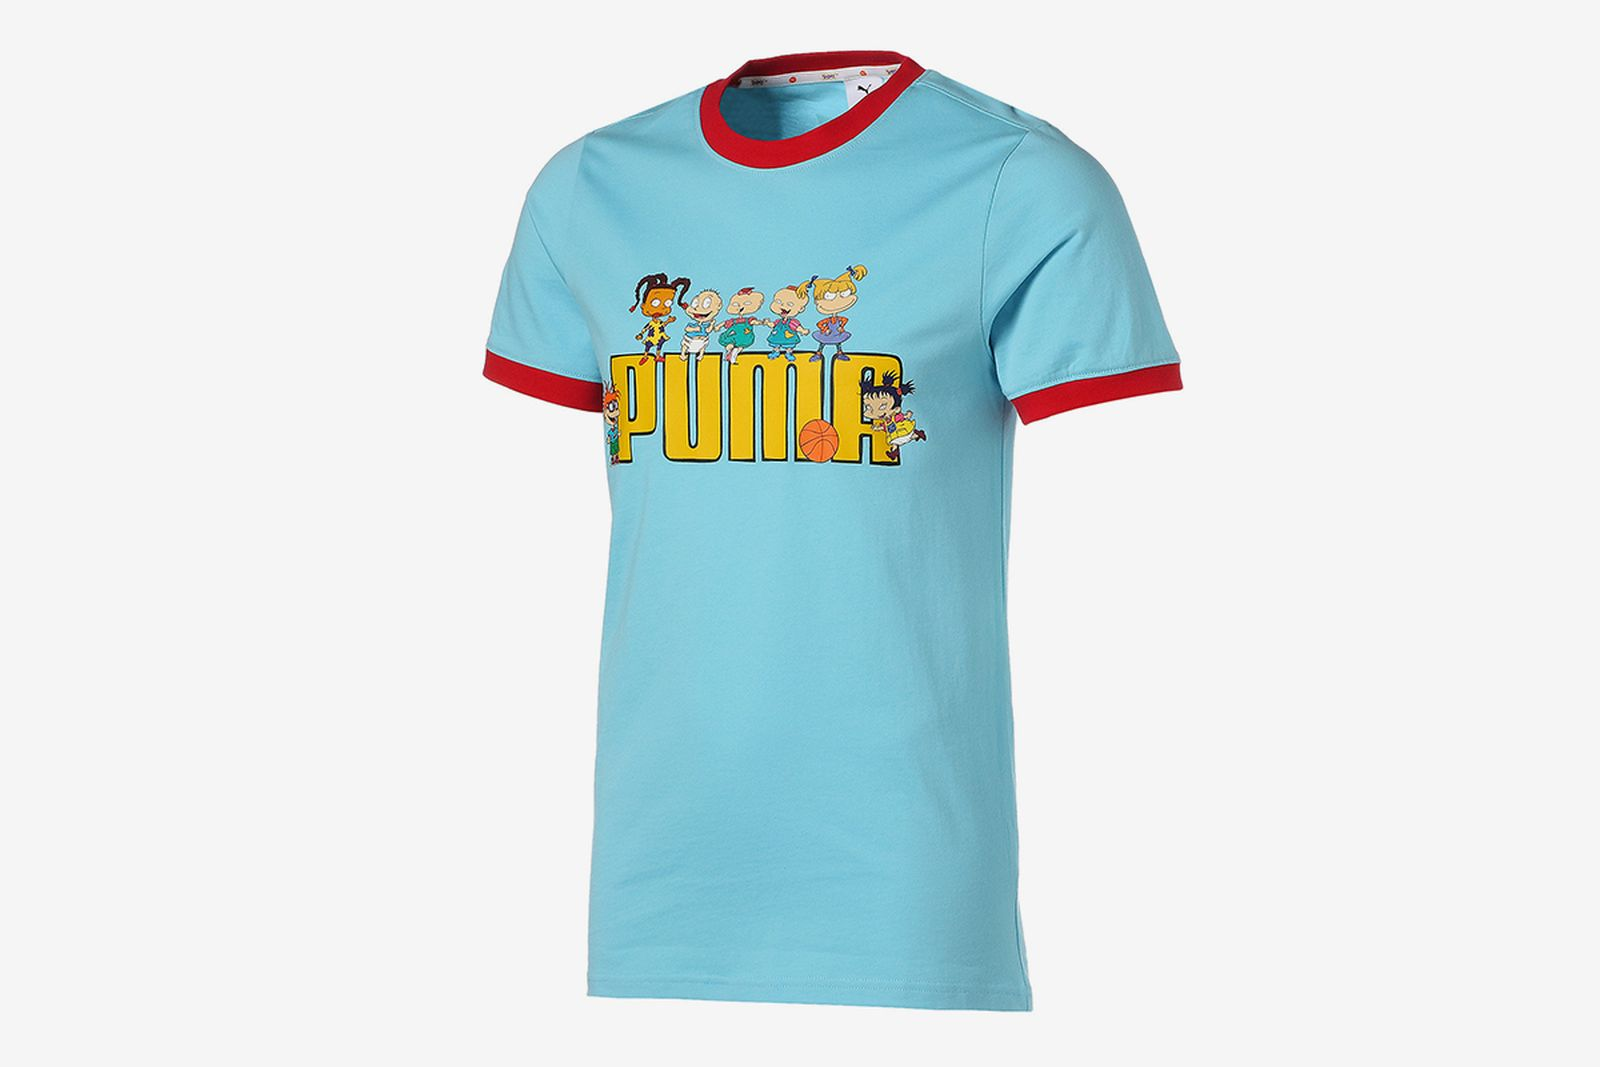 puma-rugrats-collection-release-date-price-15